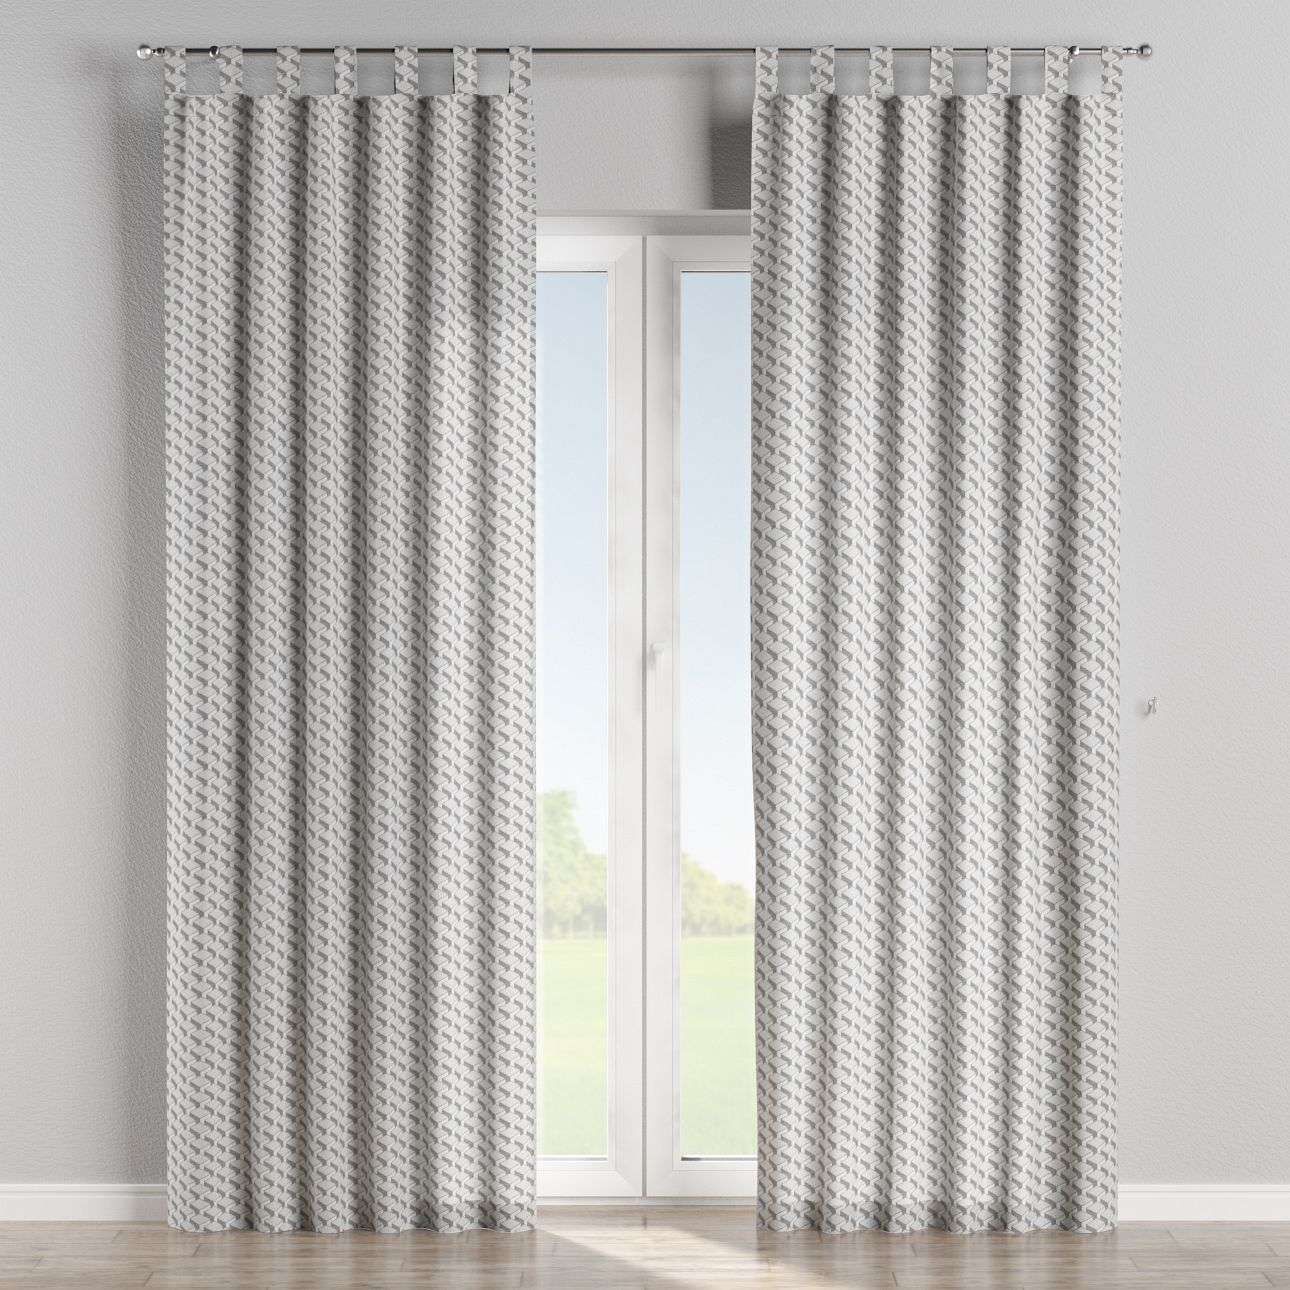 Tab top curtains in collection Rustica, fabric: 138-18